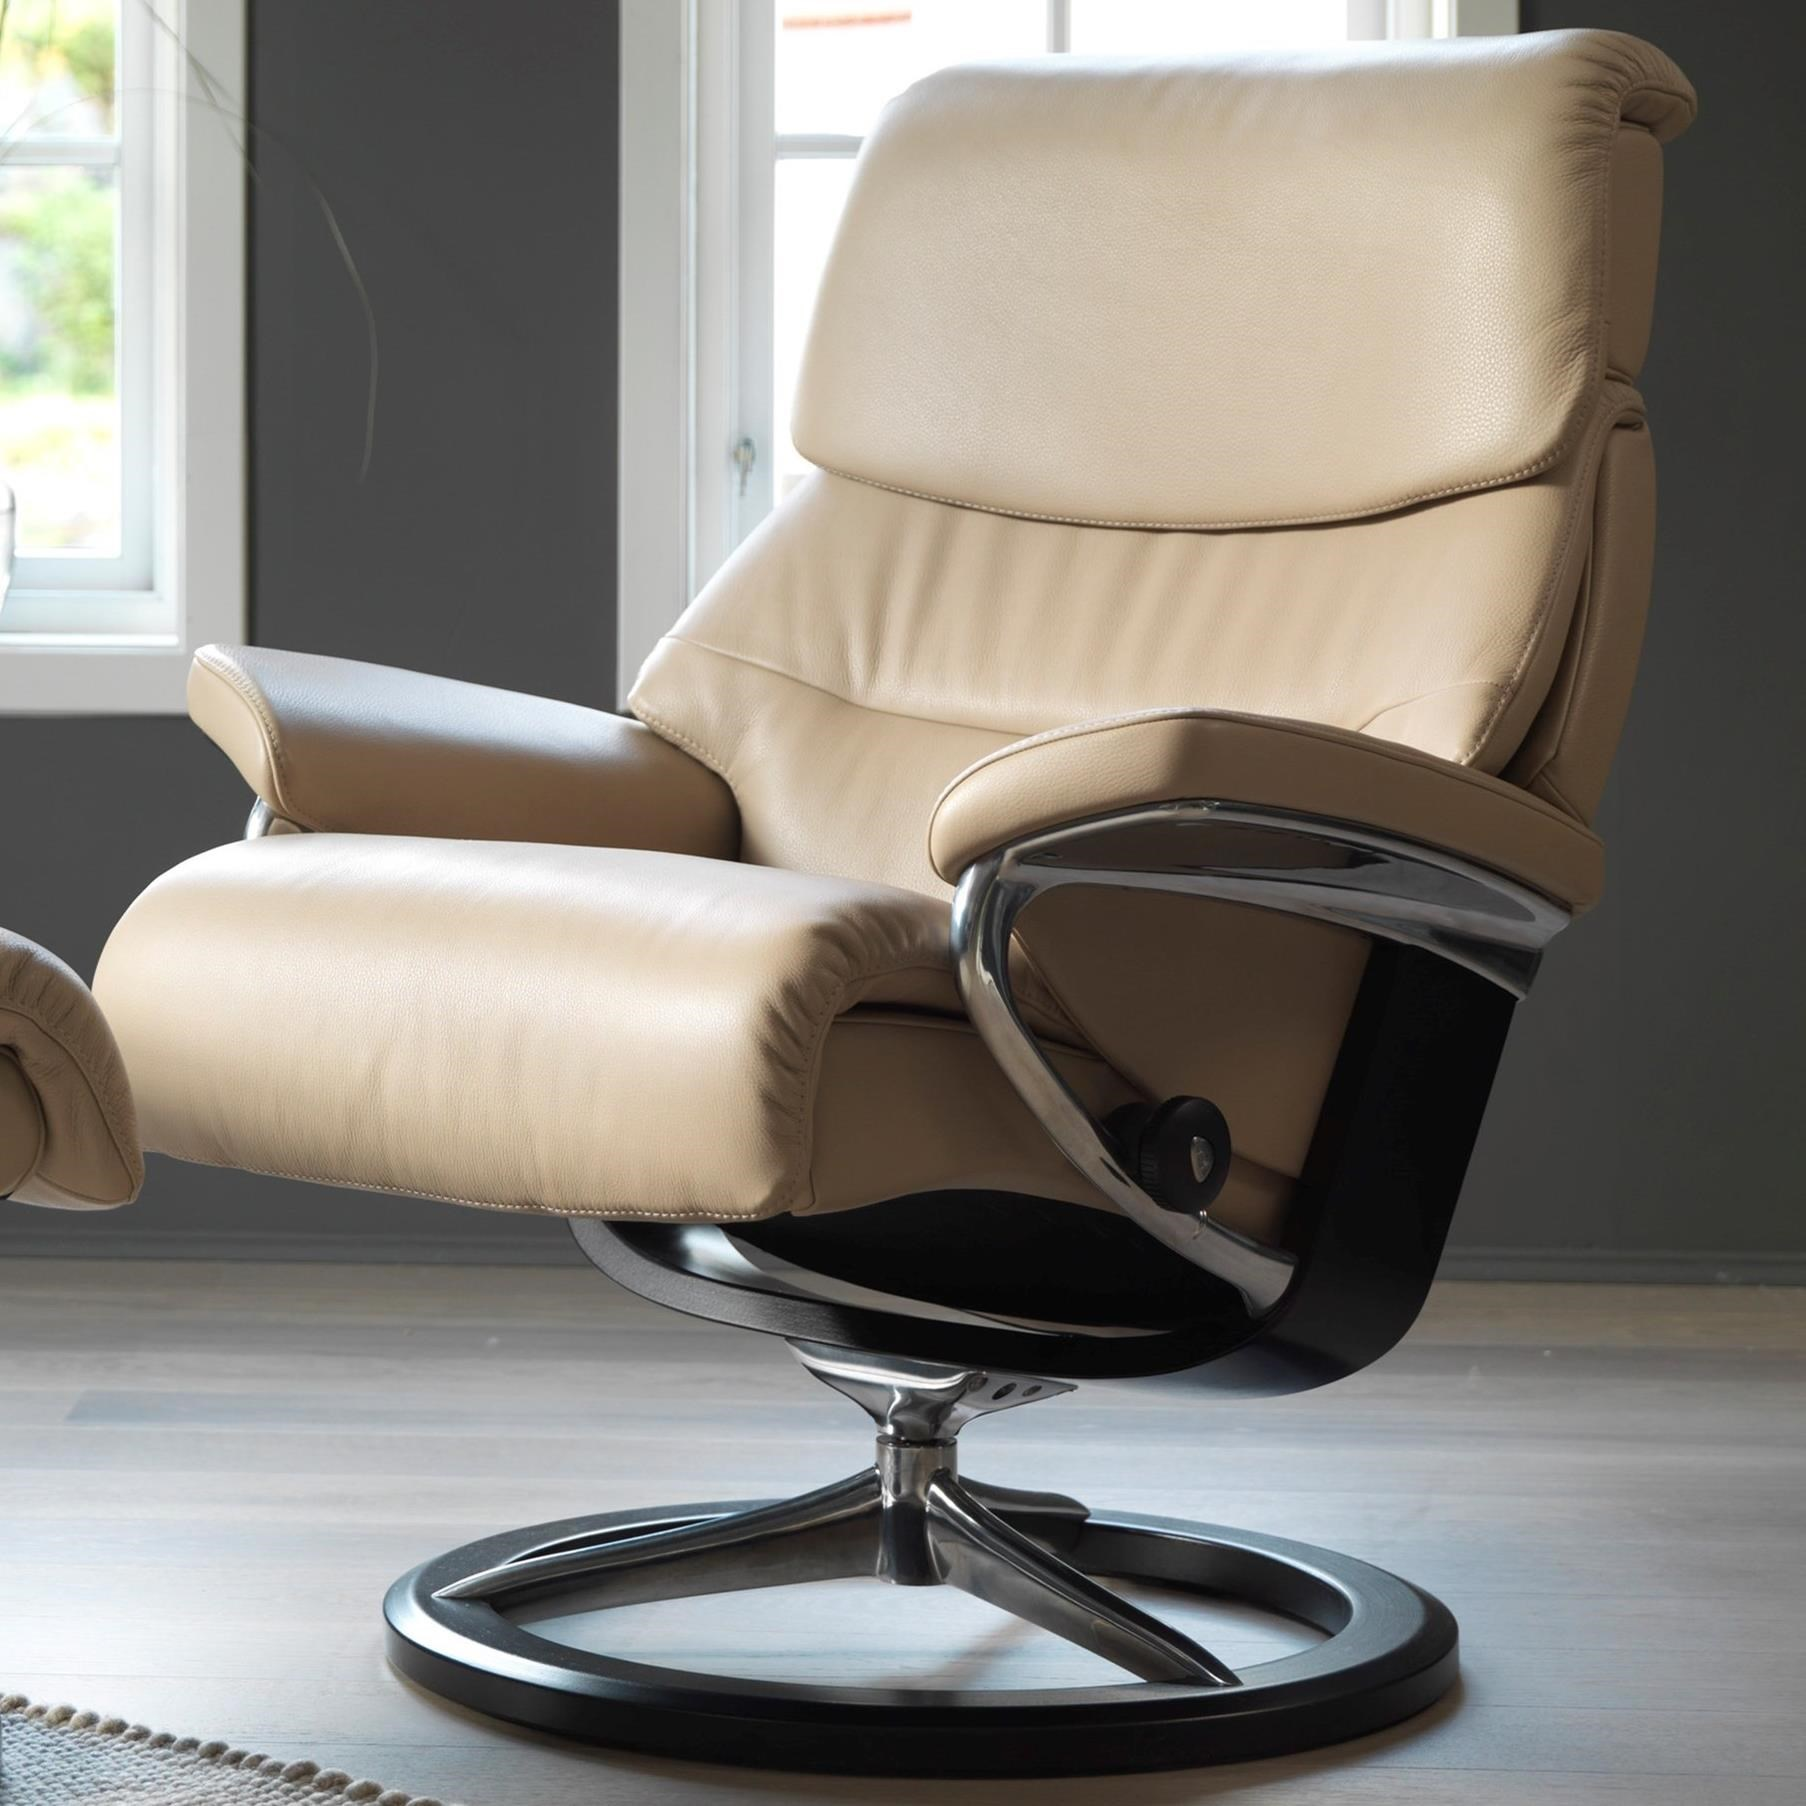 Stressless Fauteuils 2017 Stressless Capri